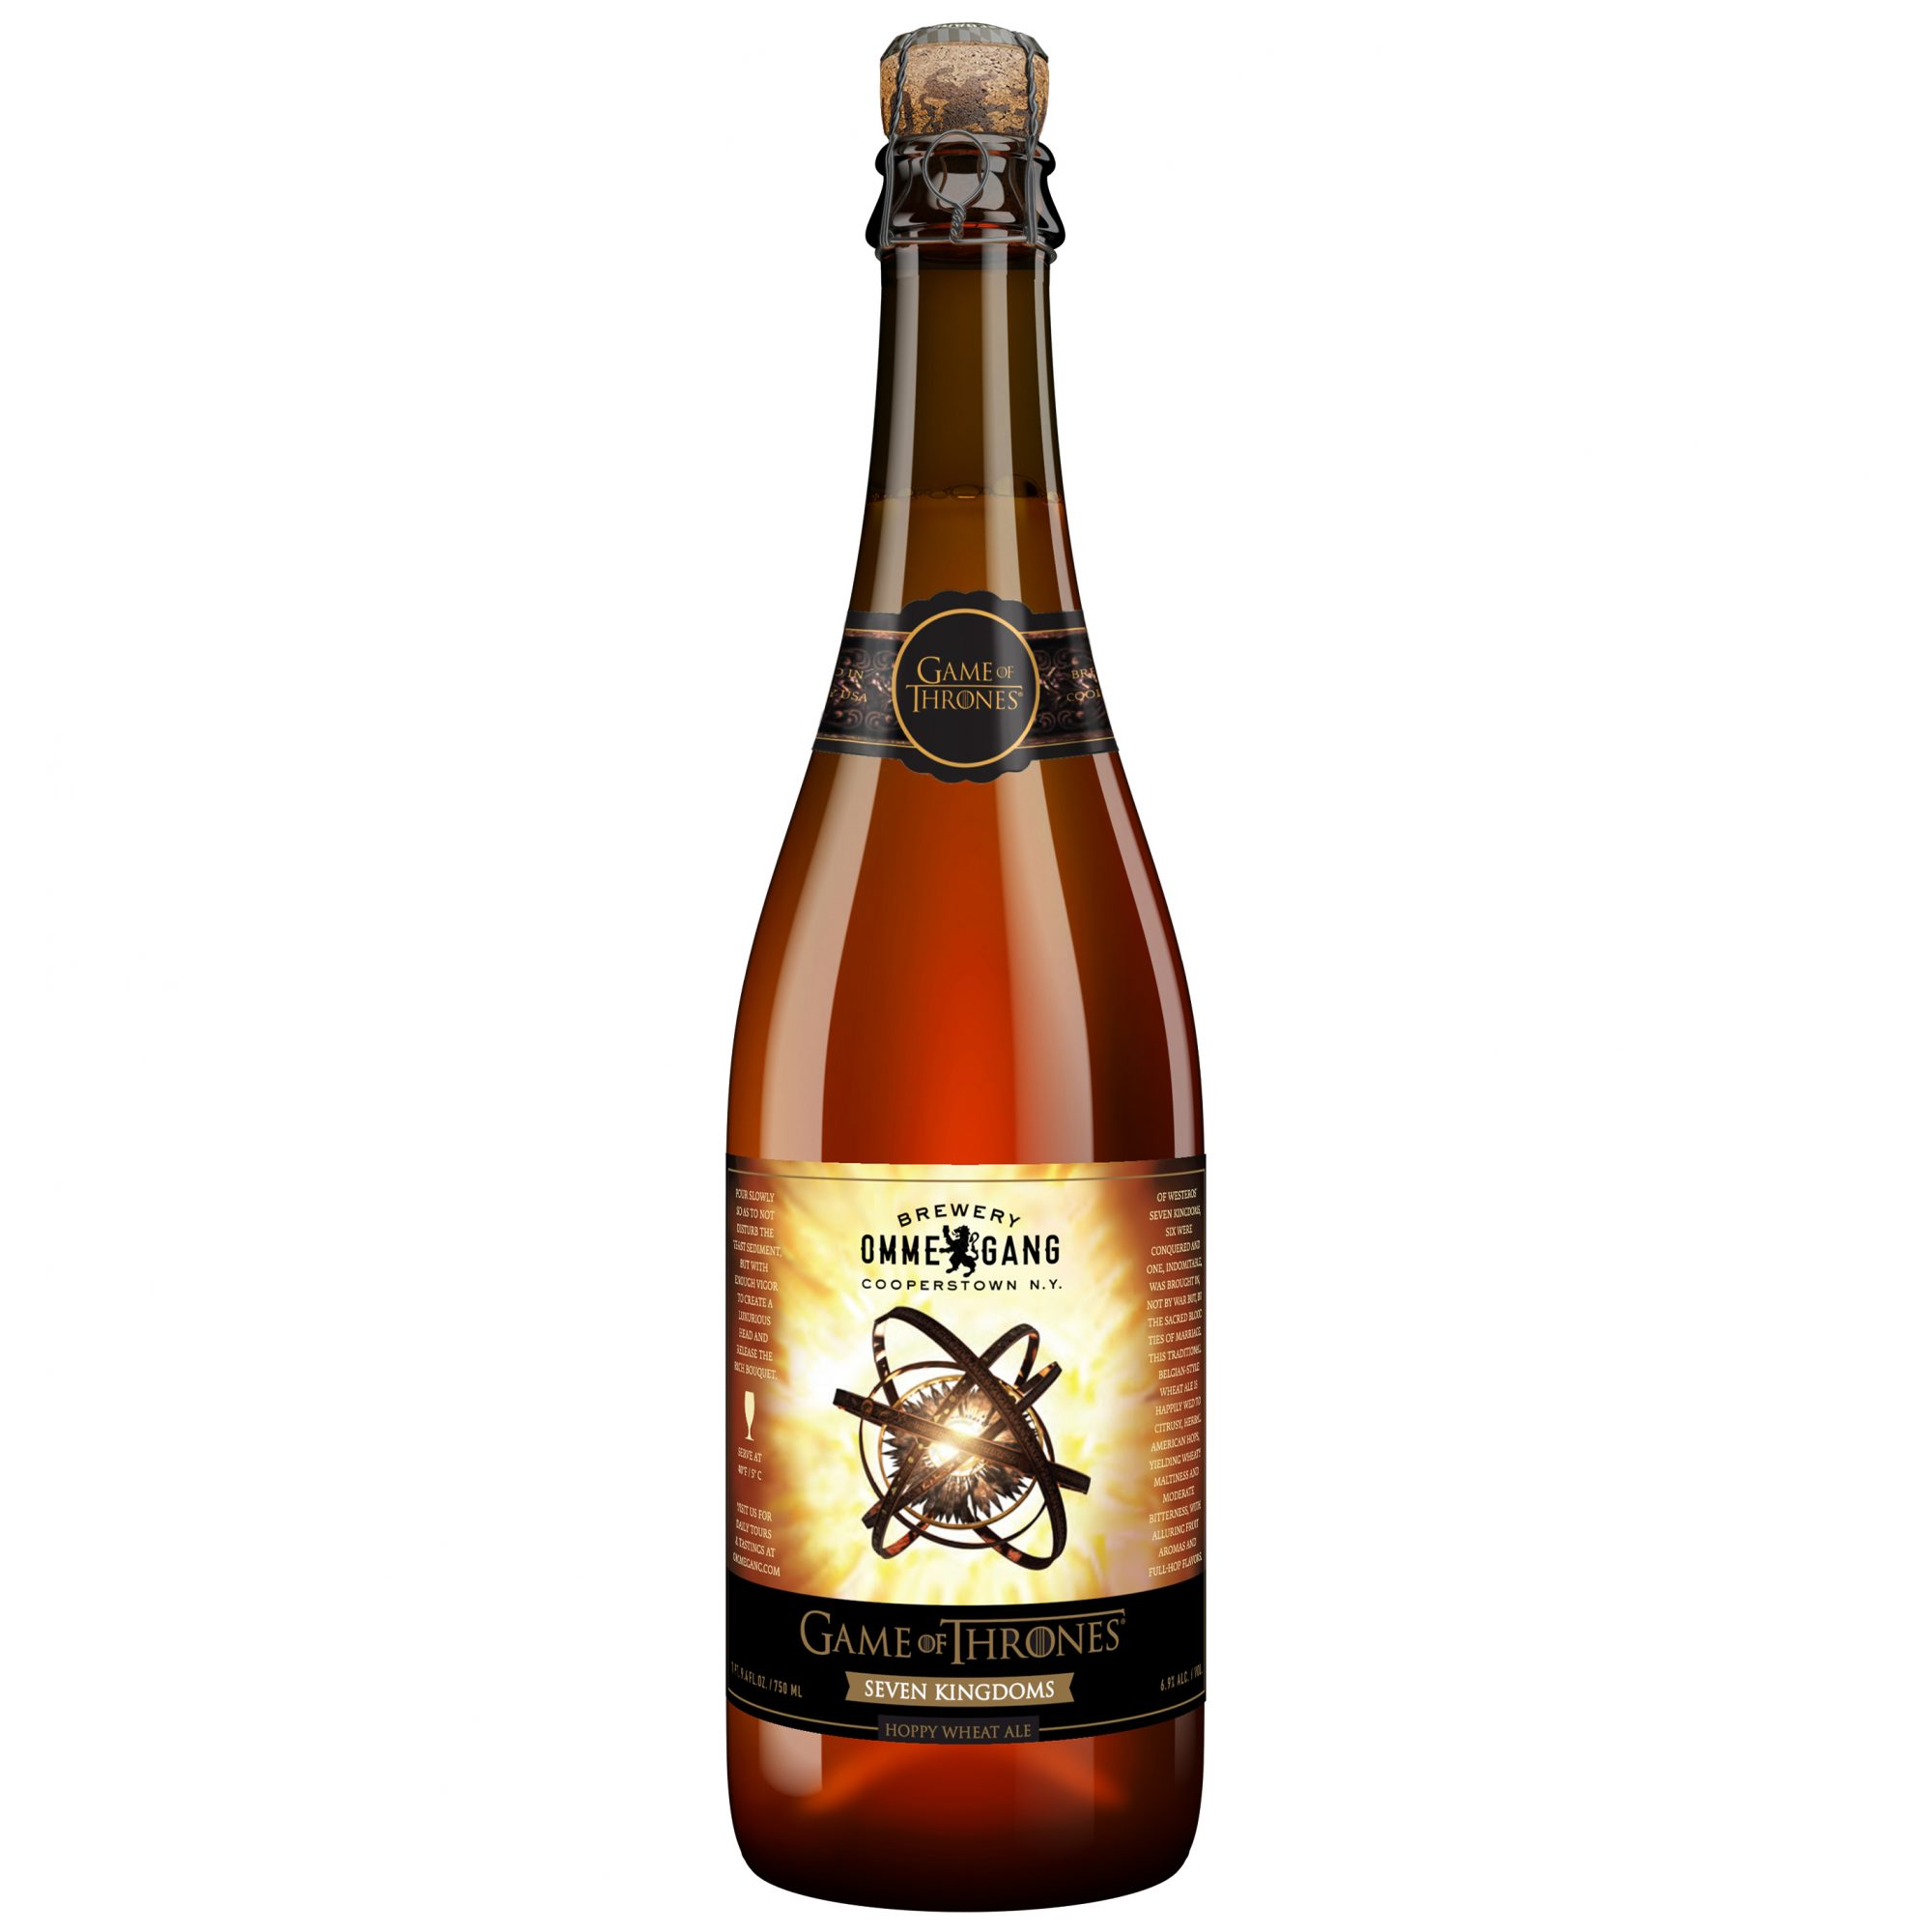 OMMEGANG GOT NEW BEAR FWX